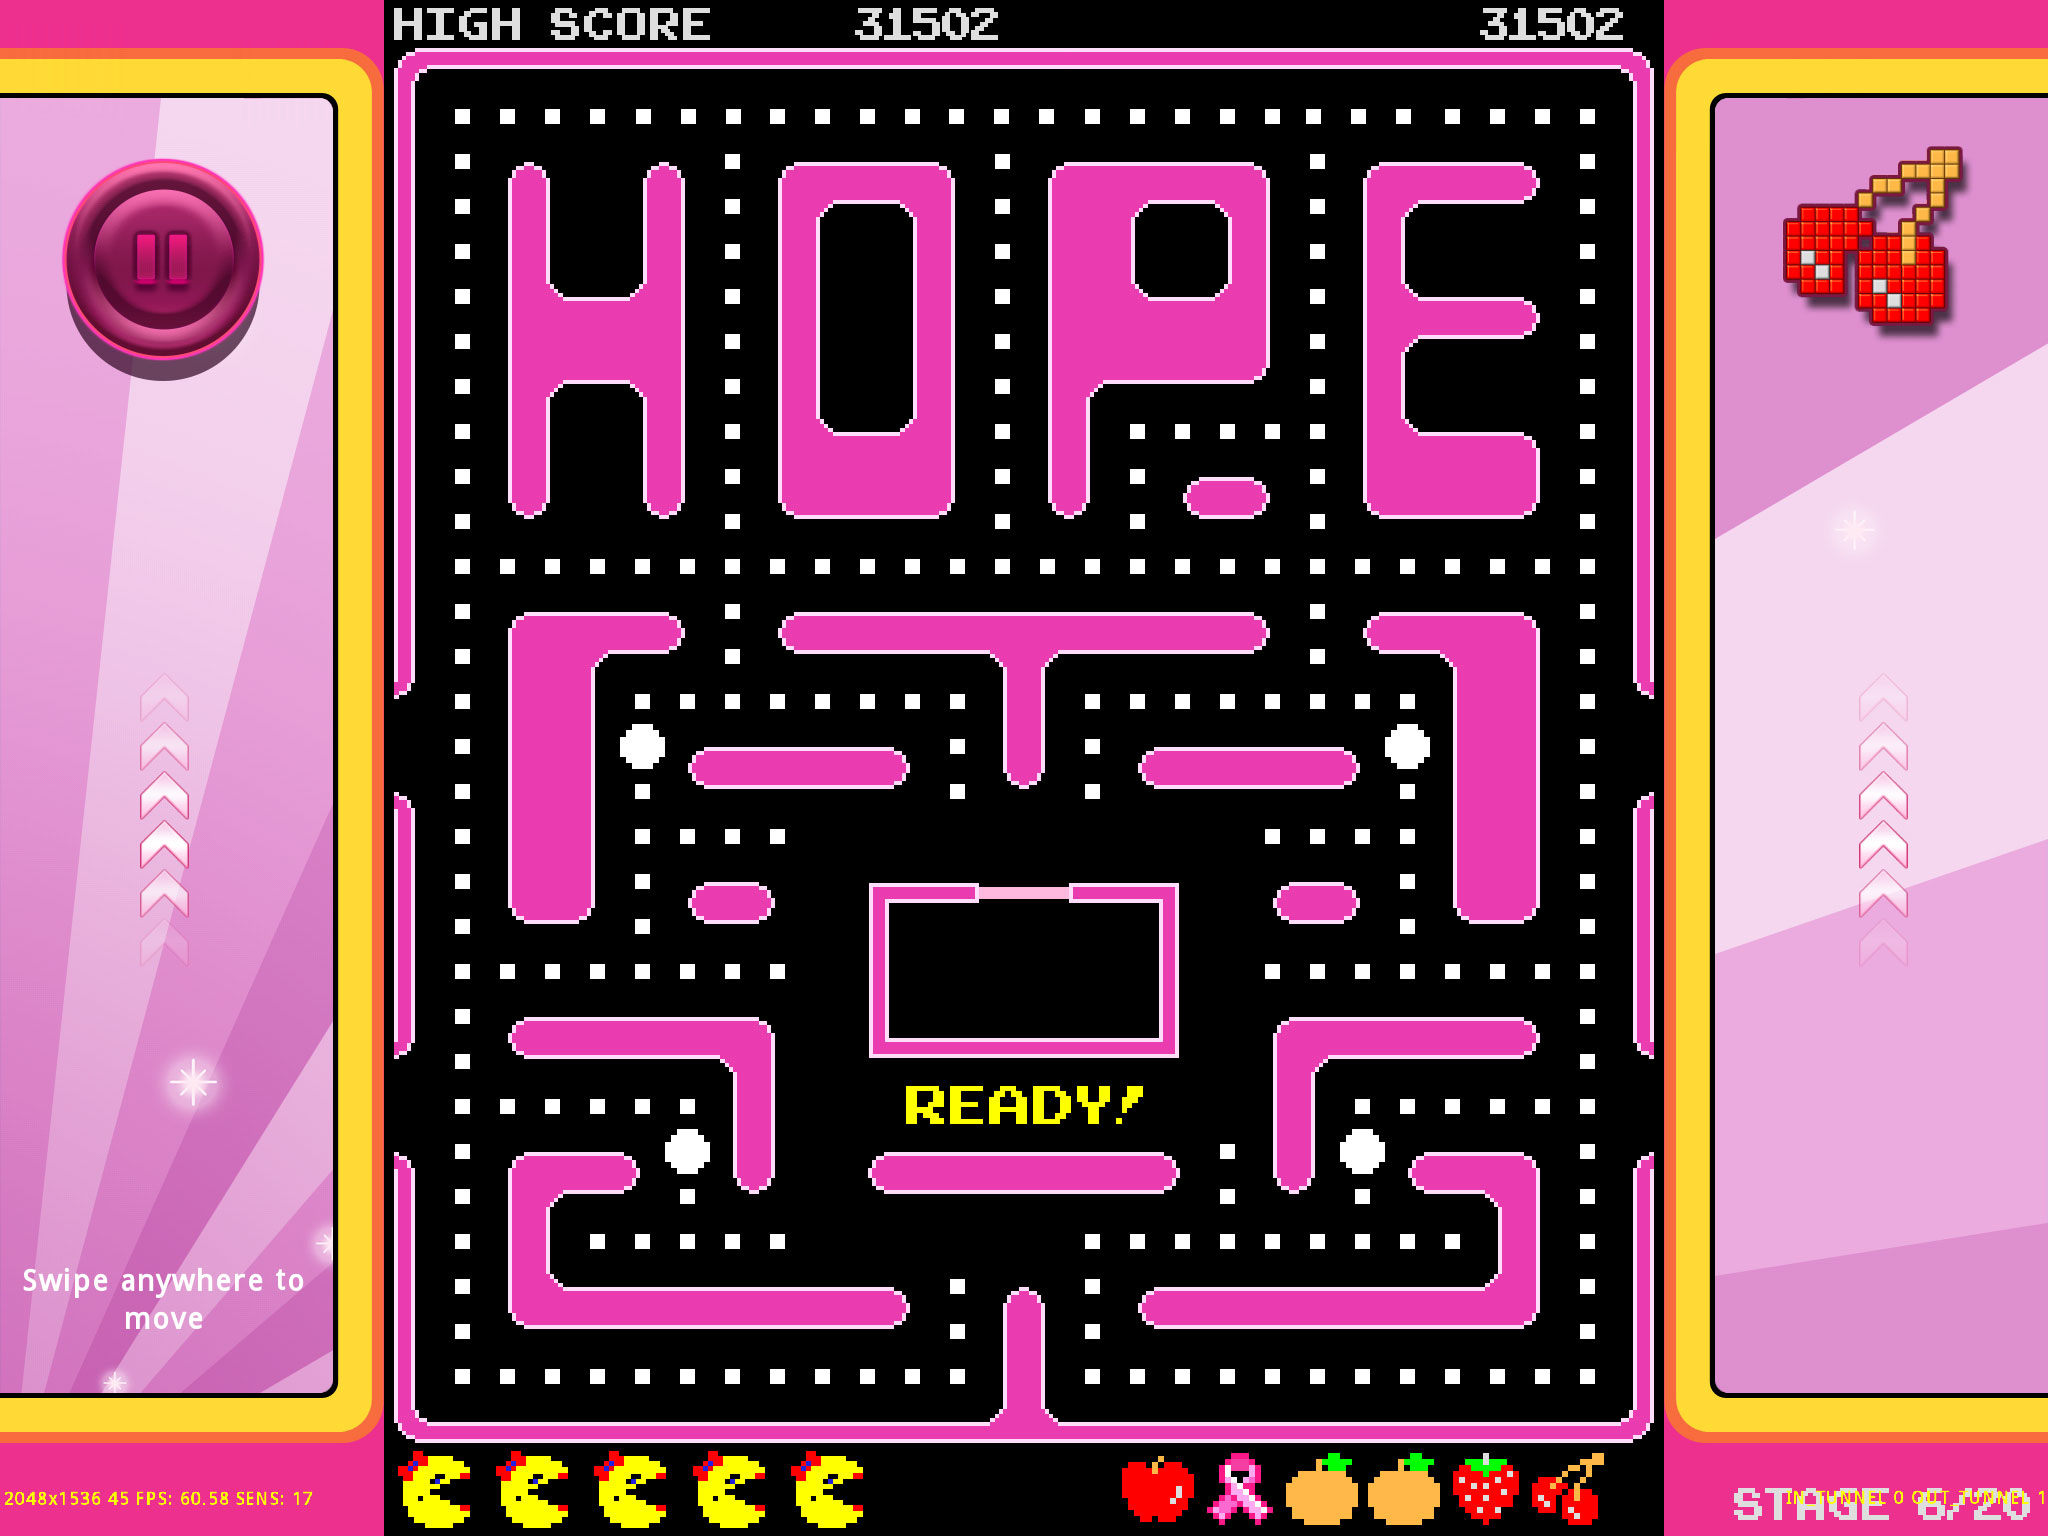 Pac-Man Franchise Launches Campaign to Fight Breast Cancer